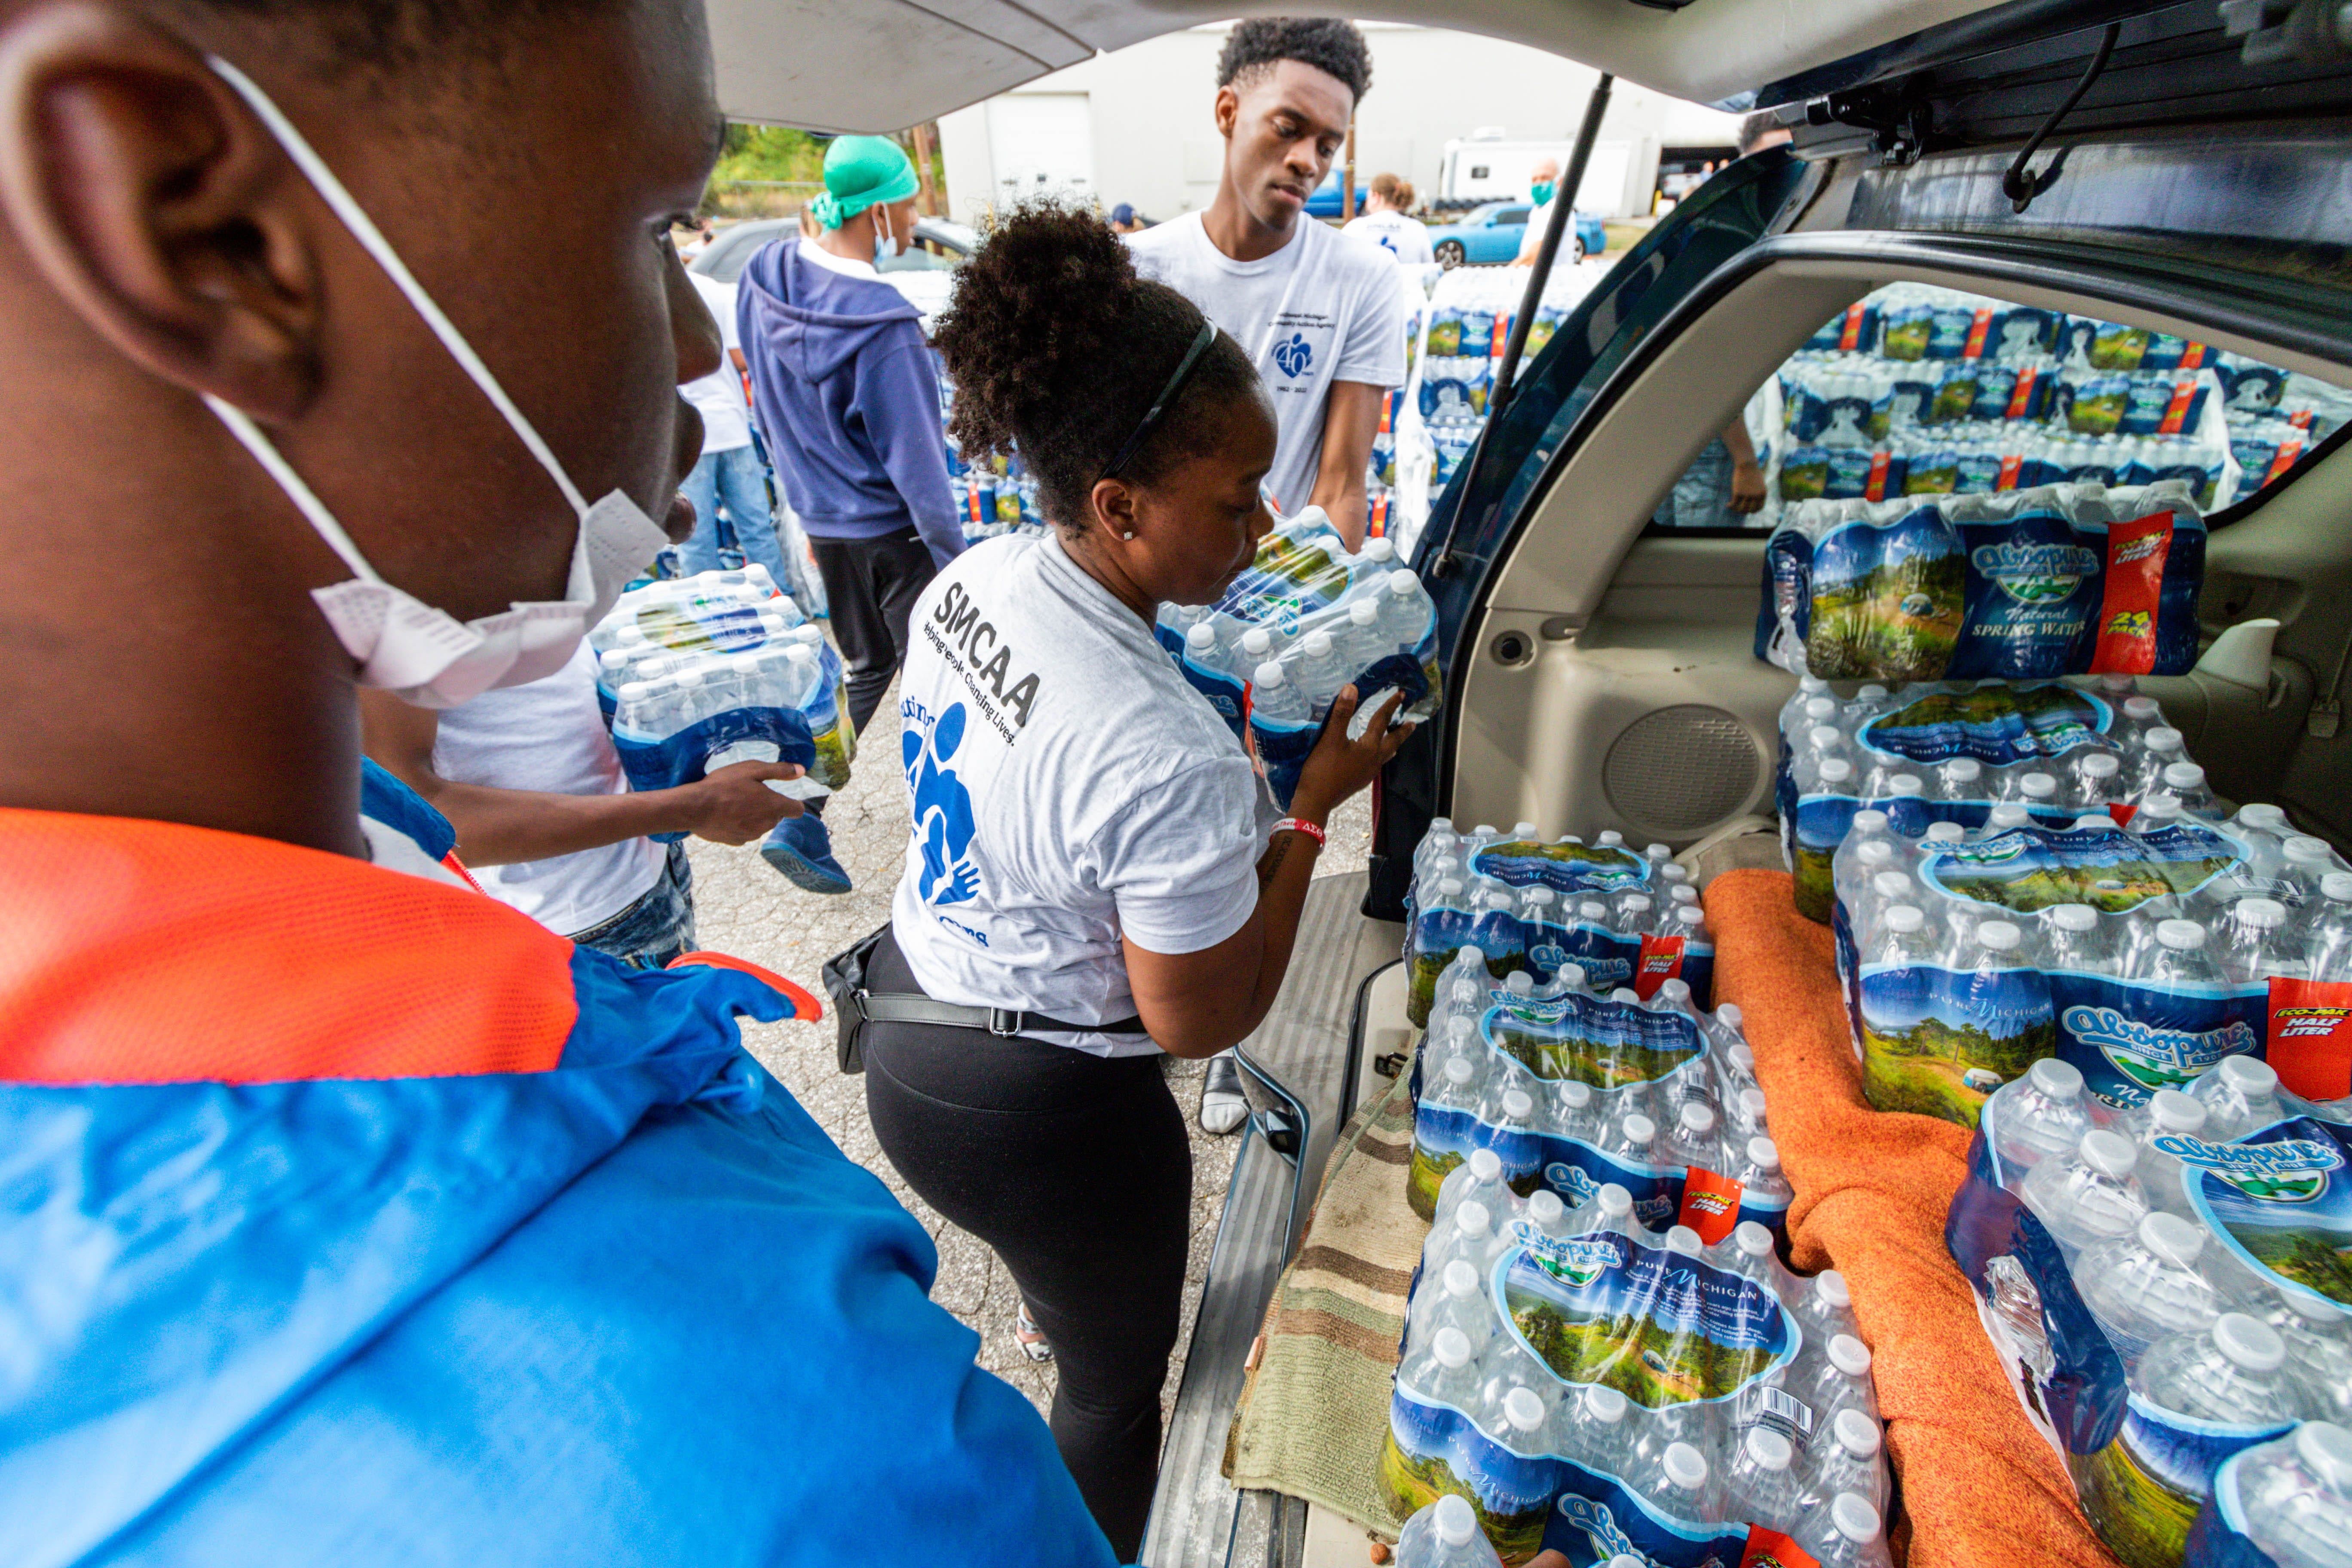 State criticized for inadequate response to Benton Harbor water crisis